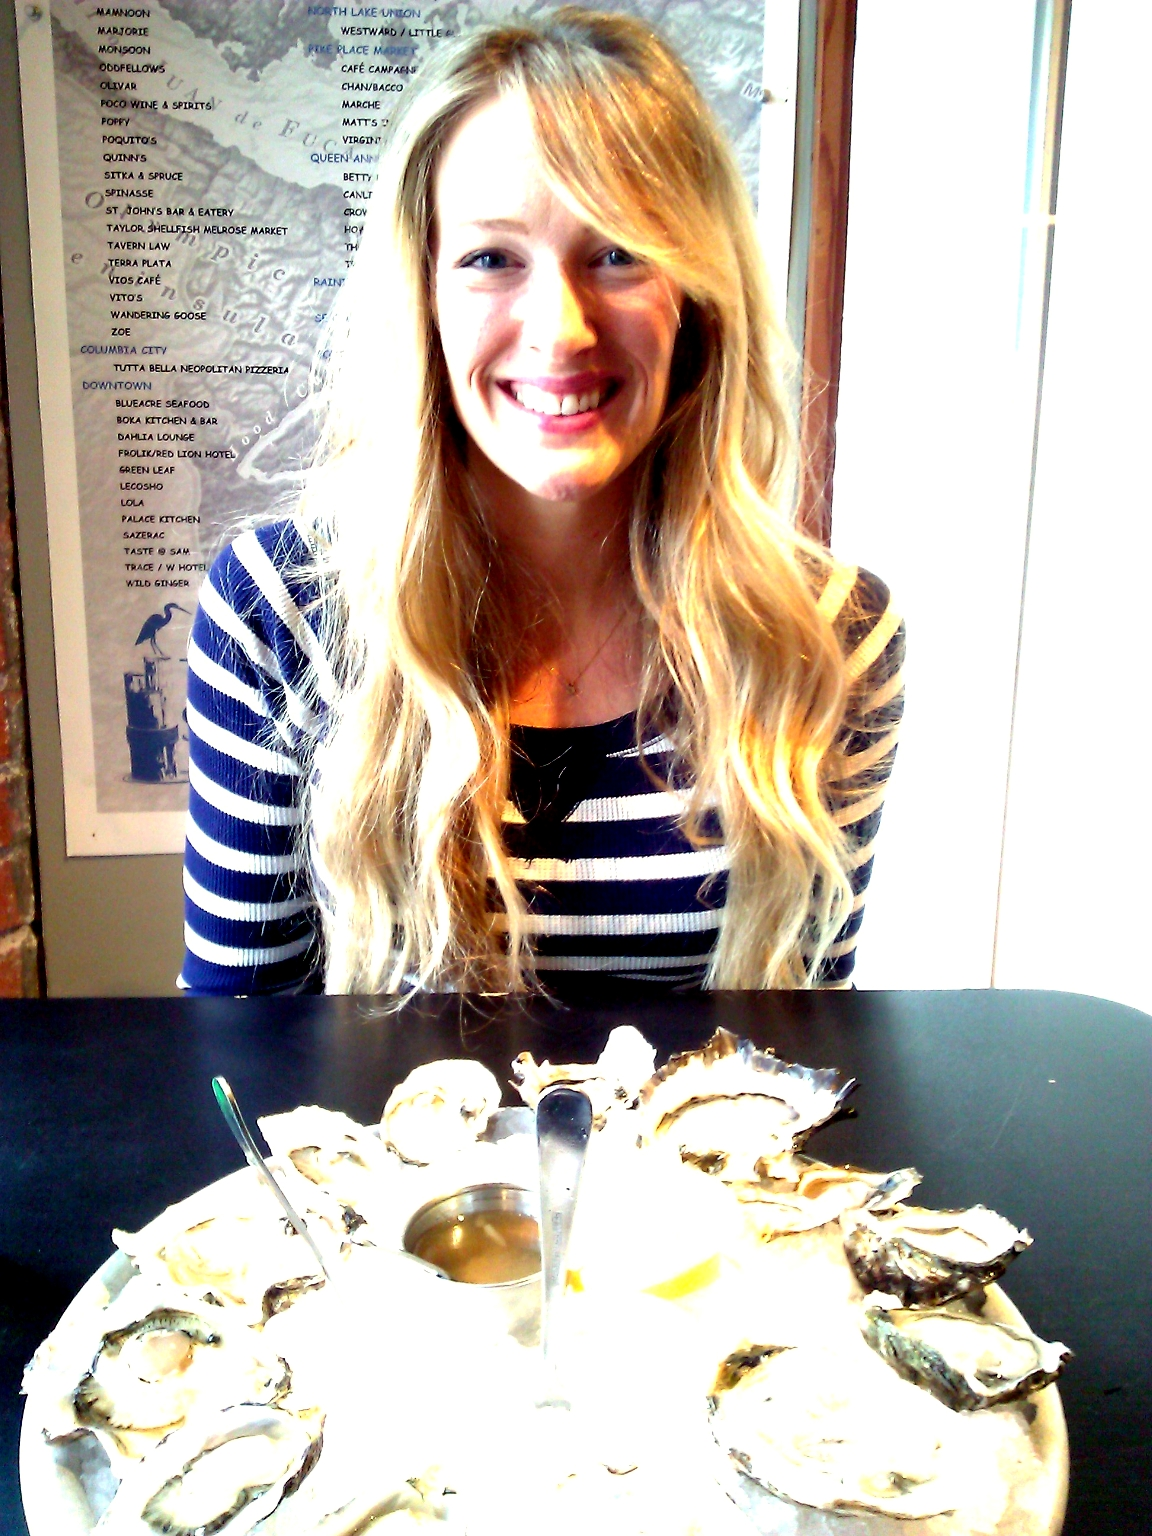 Found this one from this past weekend when Lindsay and I were at Taylor Shellfish. Can you see the excitement on my face?! I *really* love oysters!